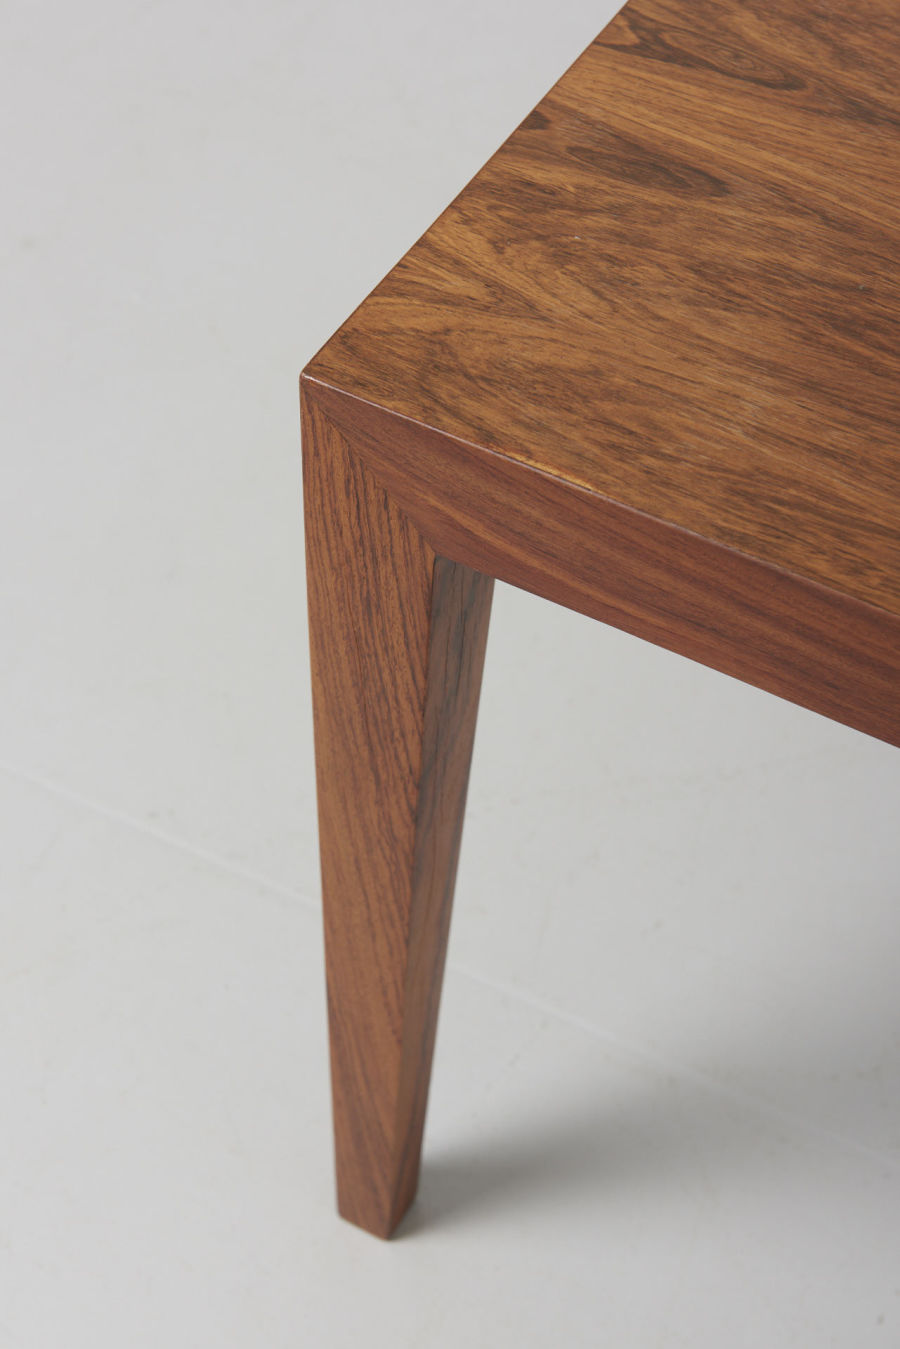 modest furniture vintage 1853 severin hansen side table rosewood 03